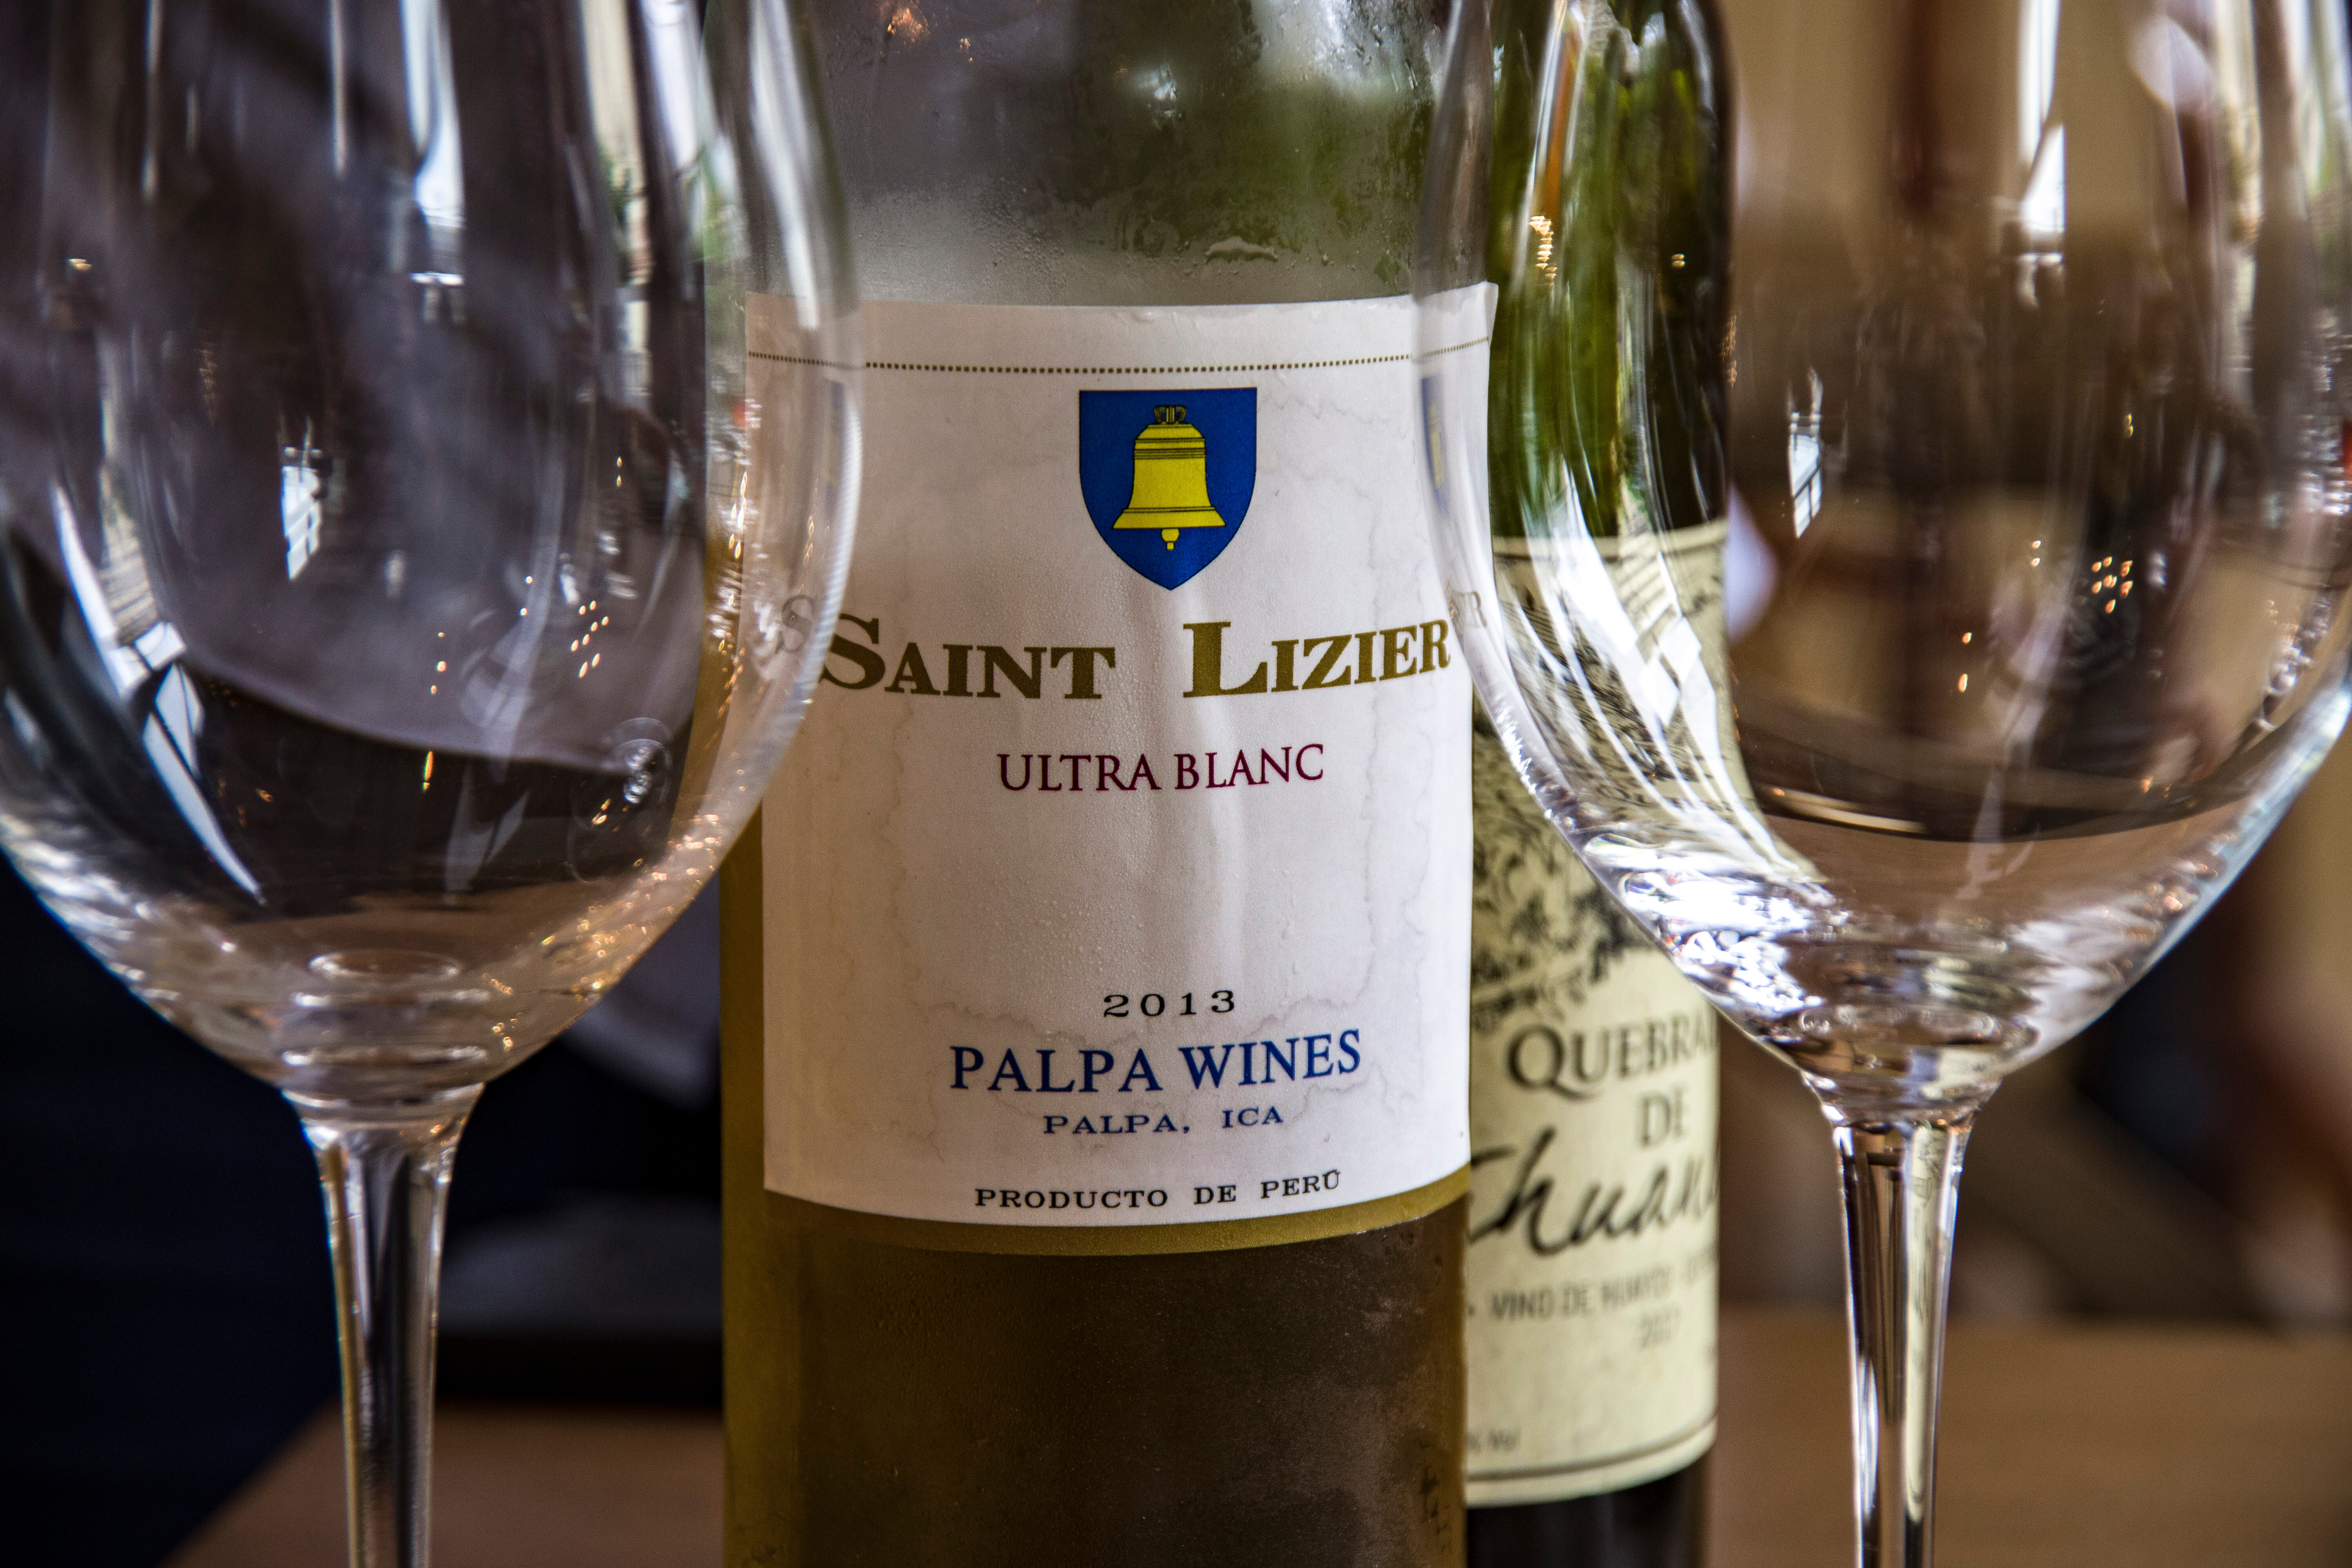 Detail of the label of a 2013 Saint Lizier Torrontes from the Palpa Valley (Ica).